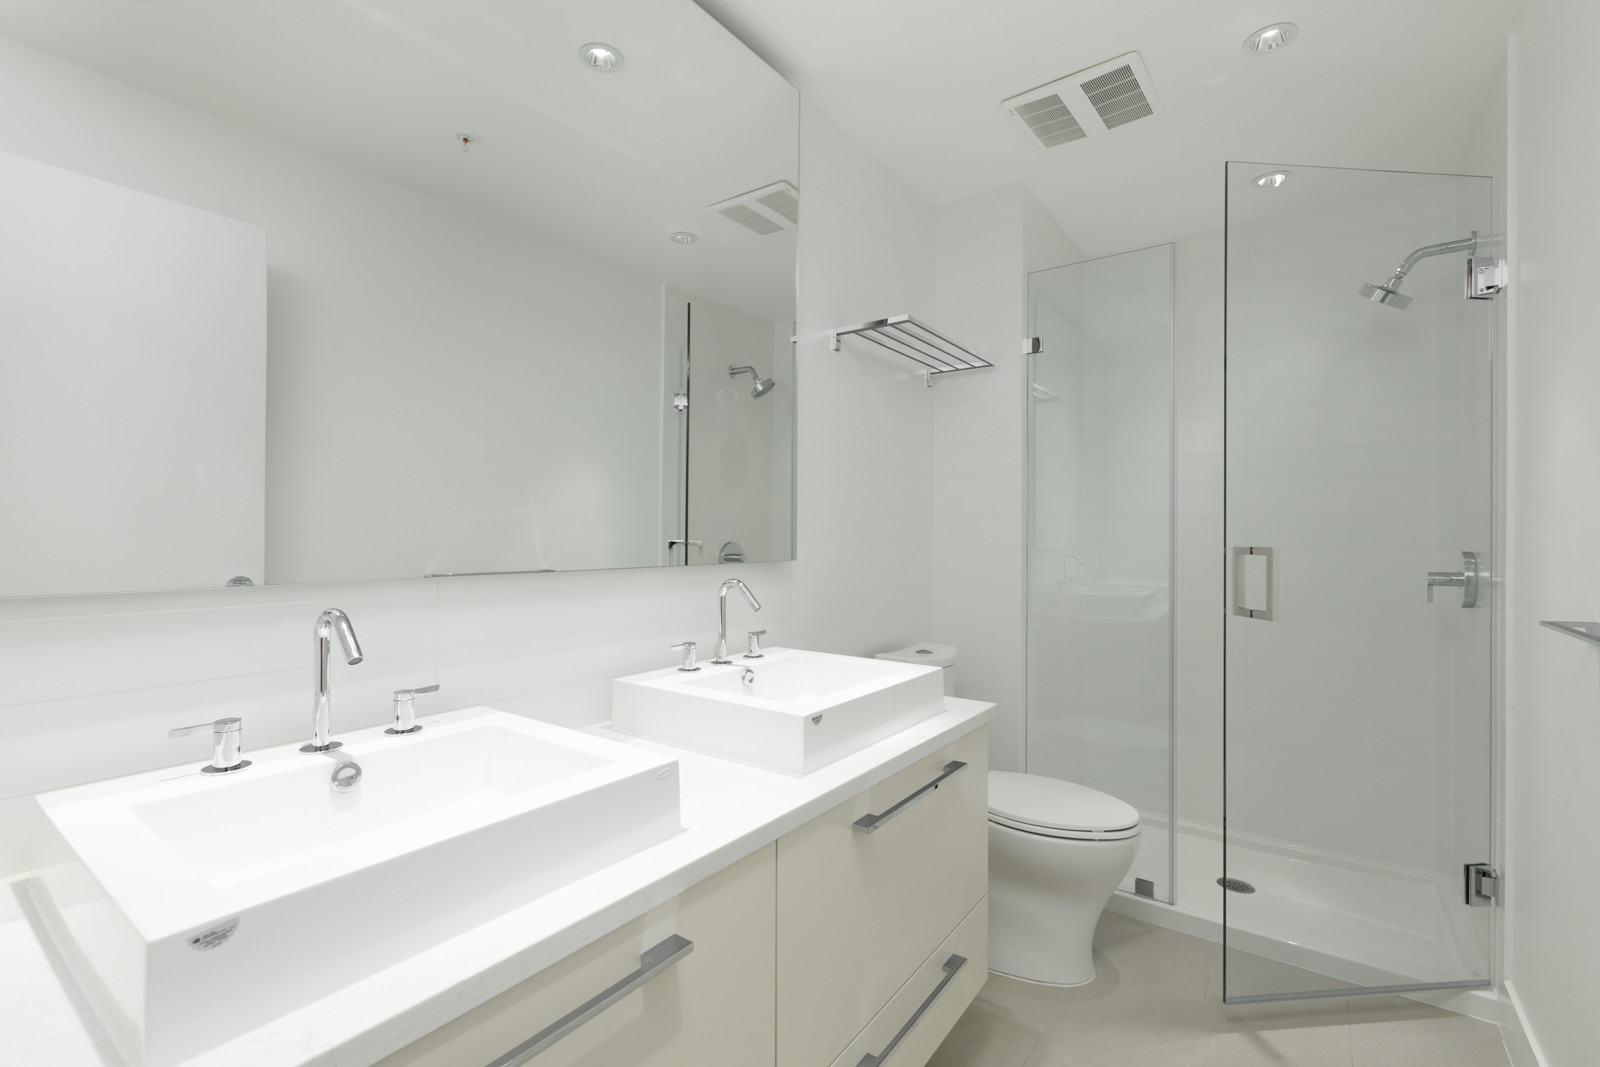 bathroom of rental condo in burnaby with mirror and two basins and counter on left and shower on right